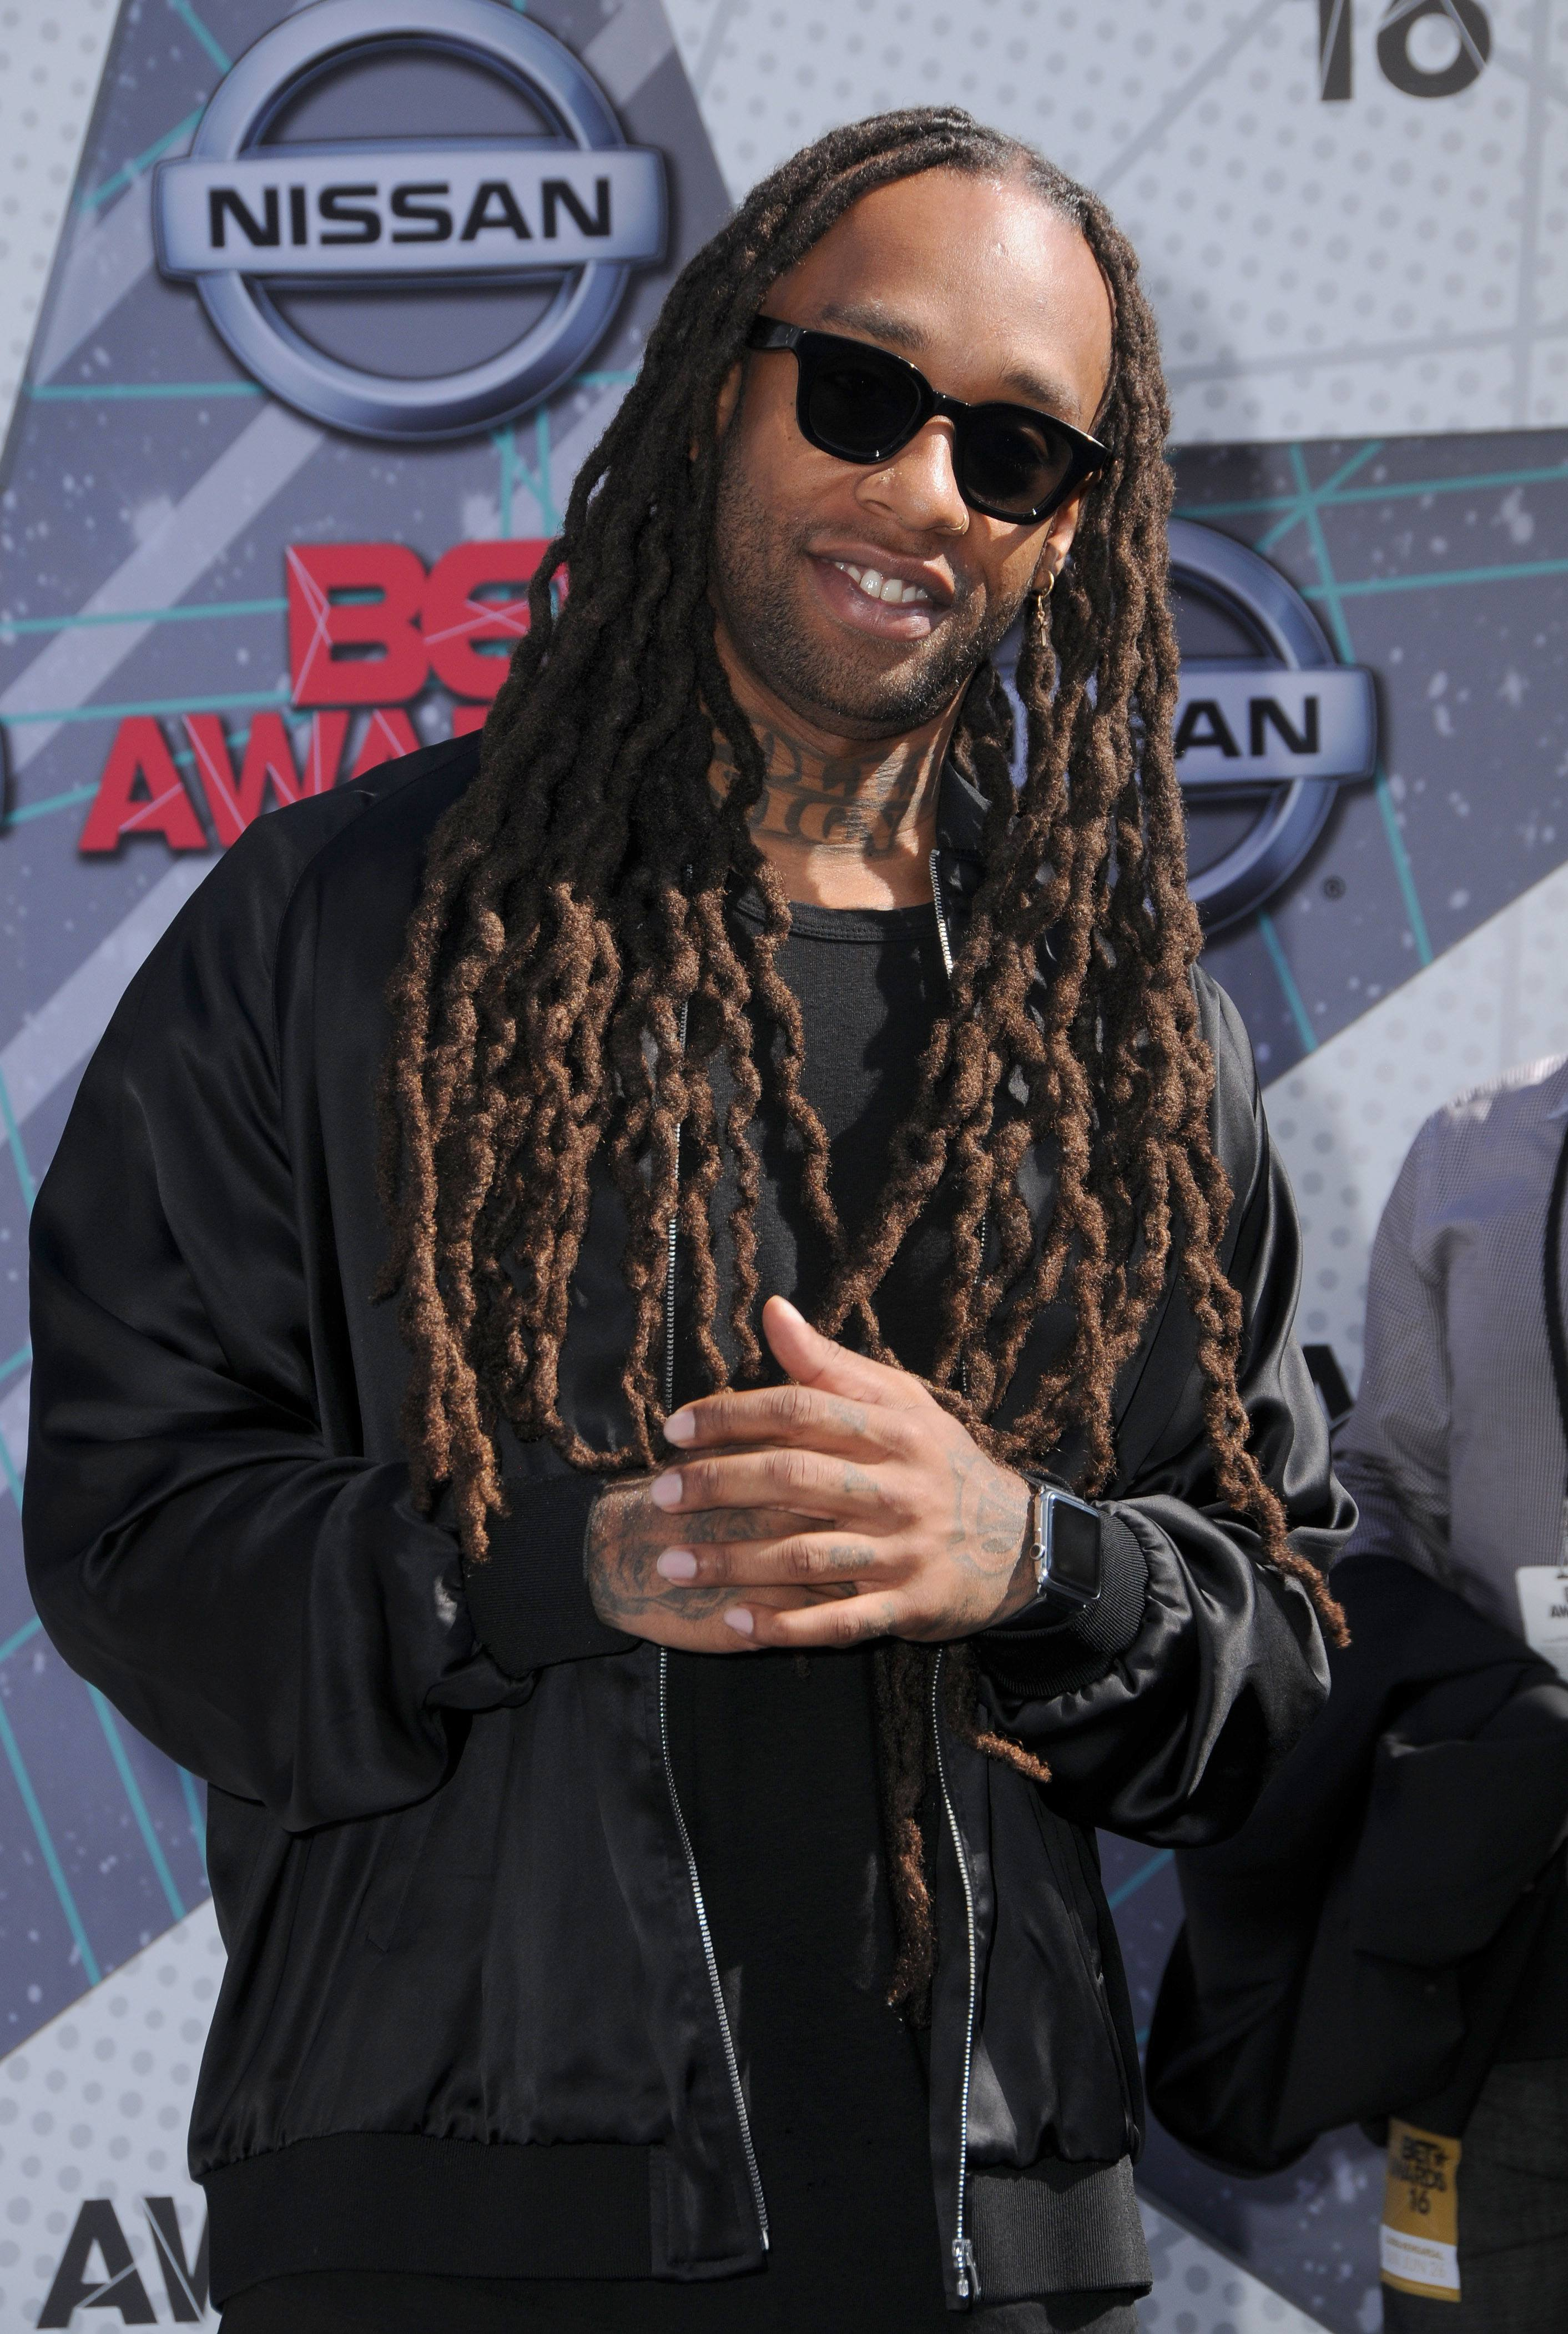 16 Top Dreadlock Hairstyles For Men To Try This Season 2020 Guide